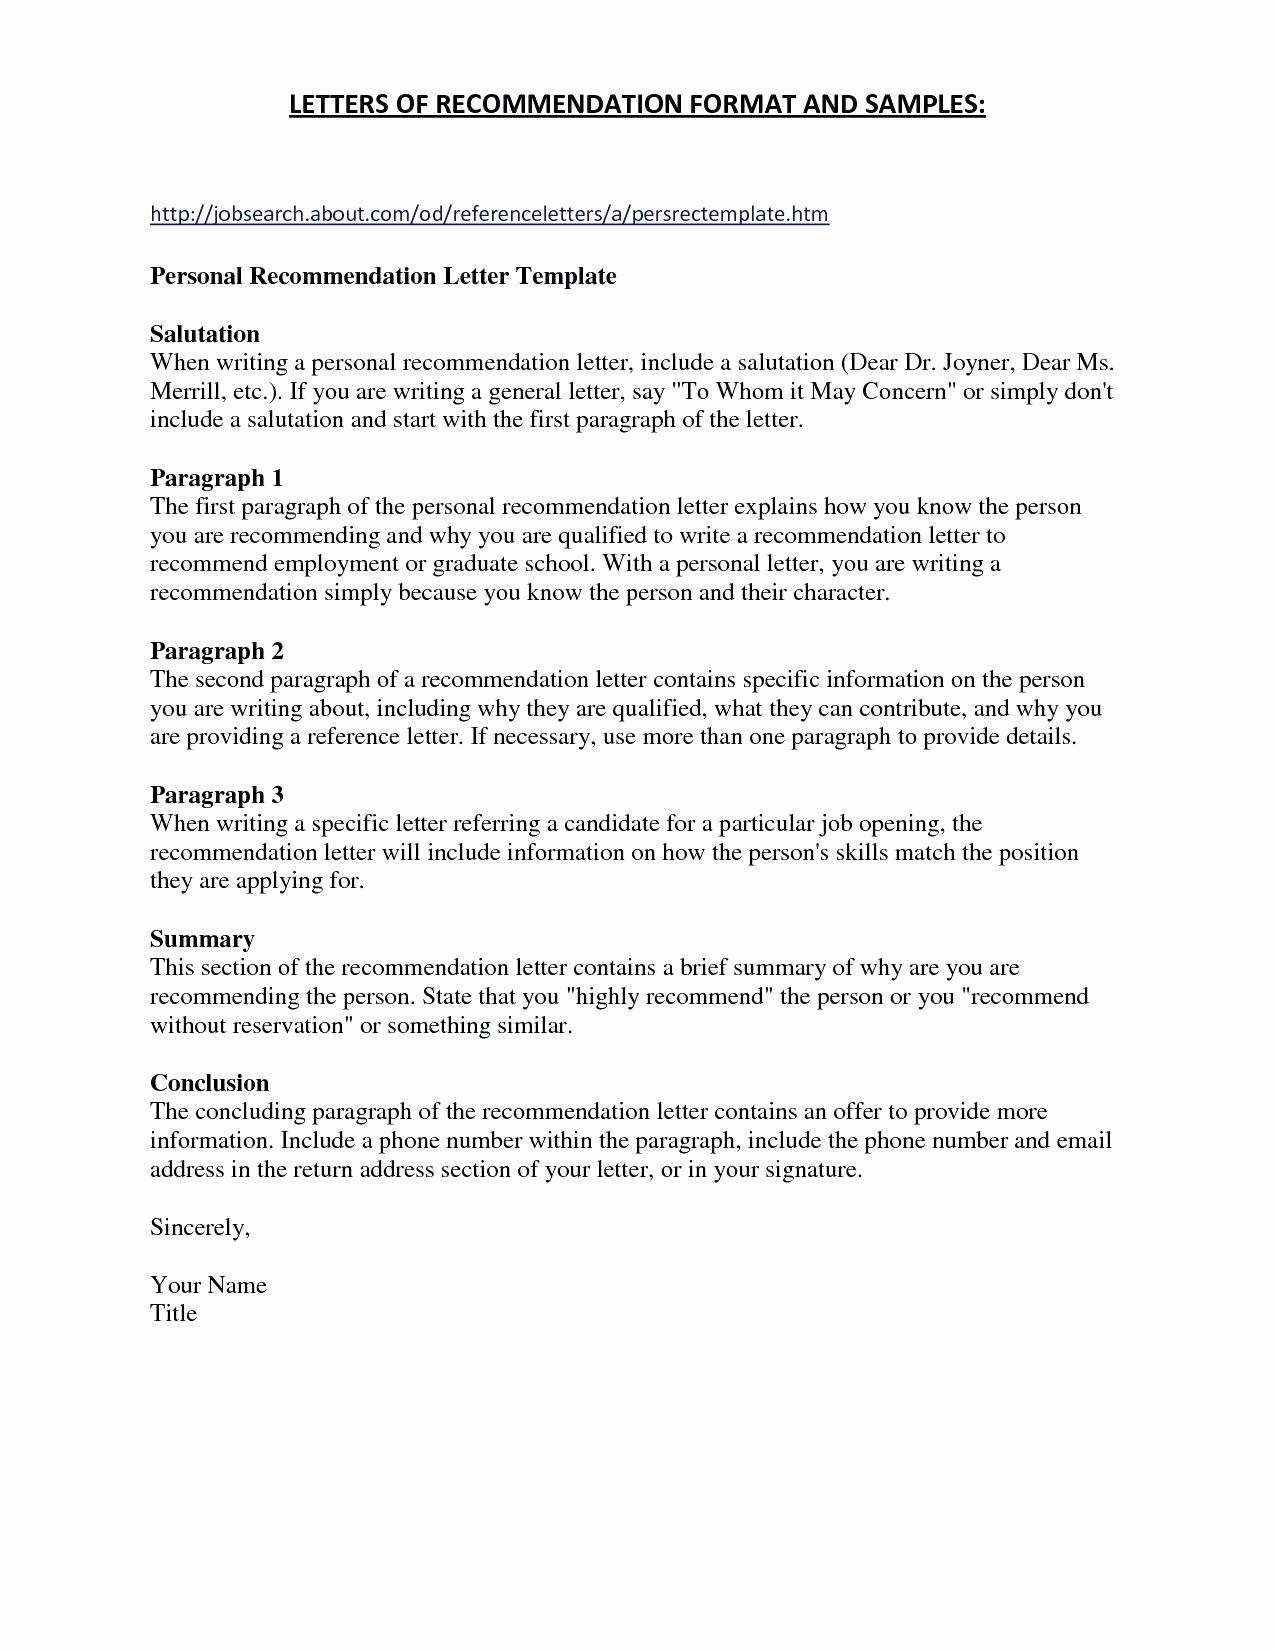 School Reference Letter Template - Mon Seal Template Awesome Fresh Pany Business Reference Letter